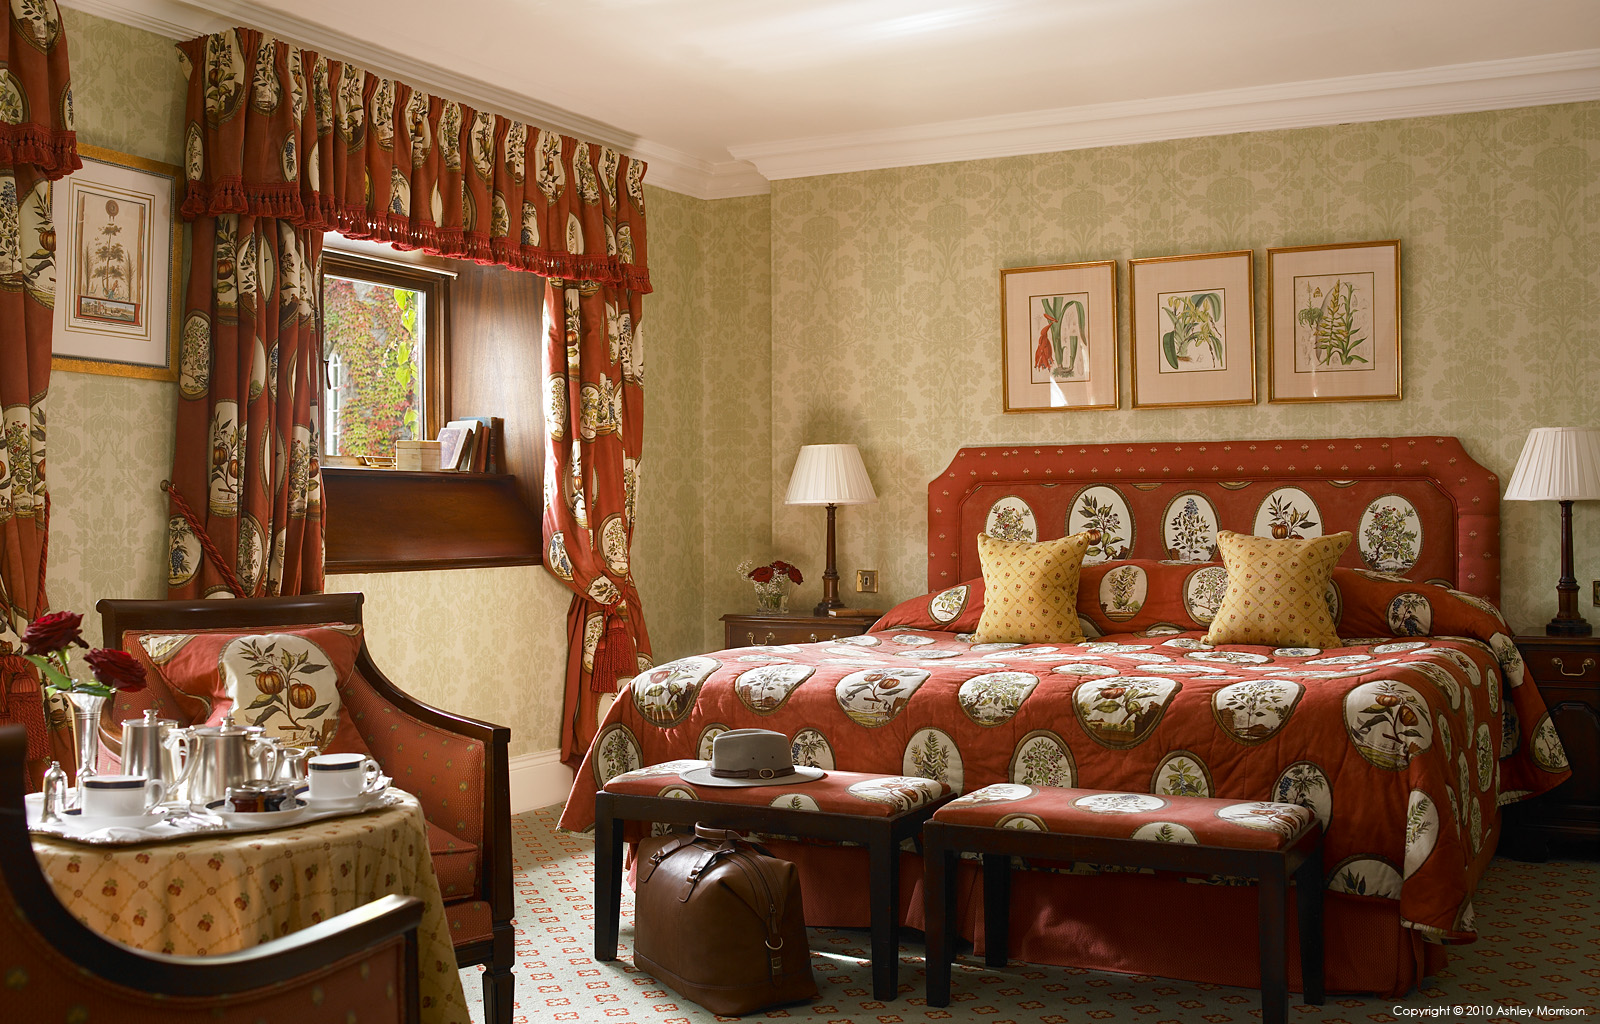 Queen Ann Bedroom Suite At Dromoland Castle In County Clare